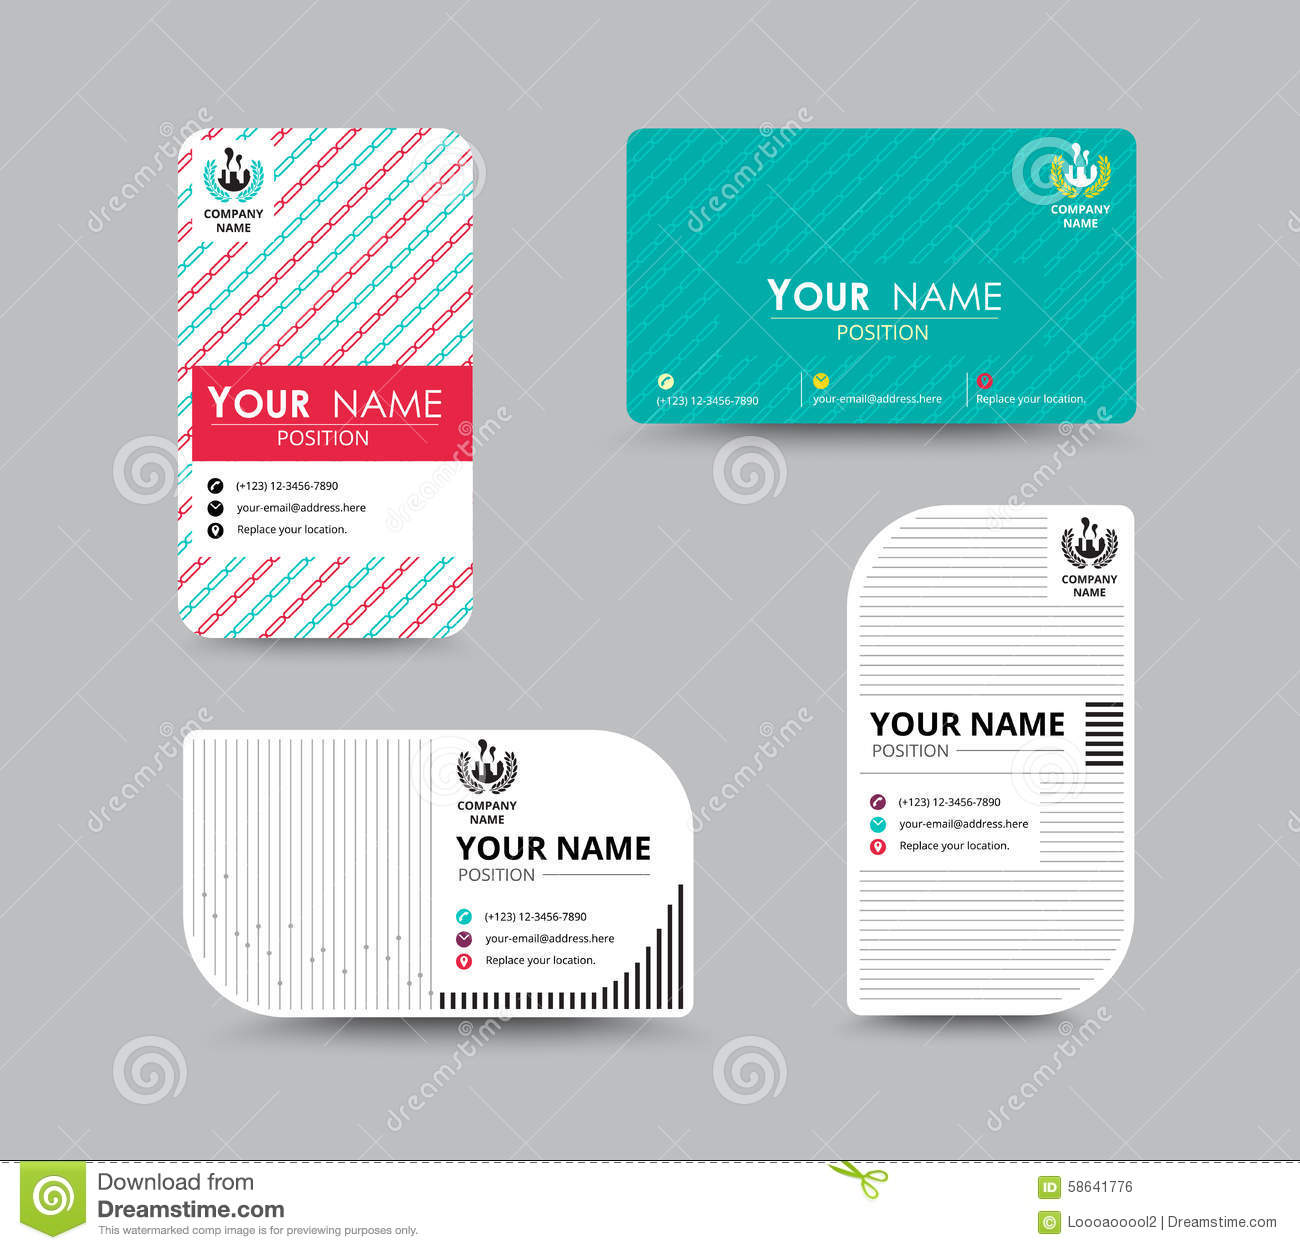 Business Name Card Design For Corporation Card Template Vector – Sample Name Card